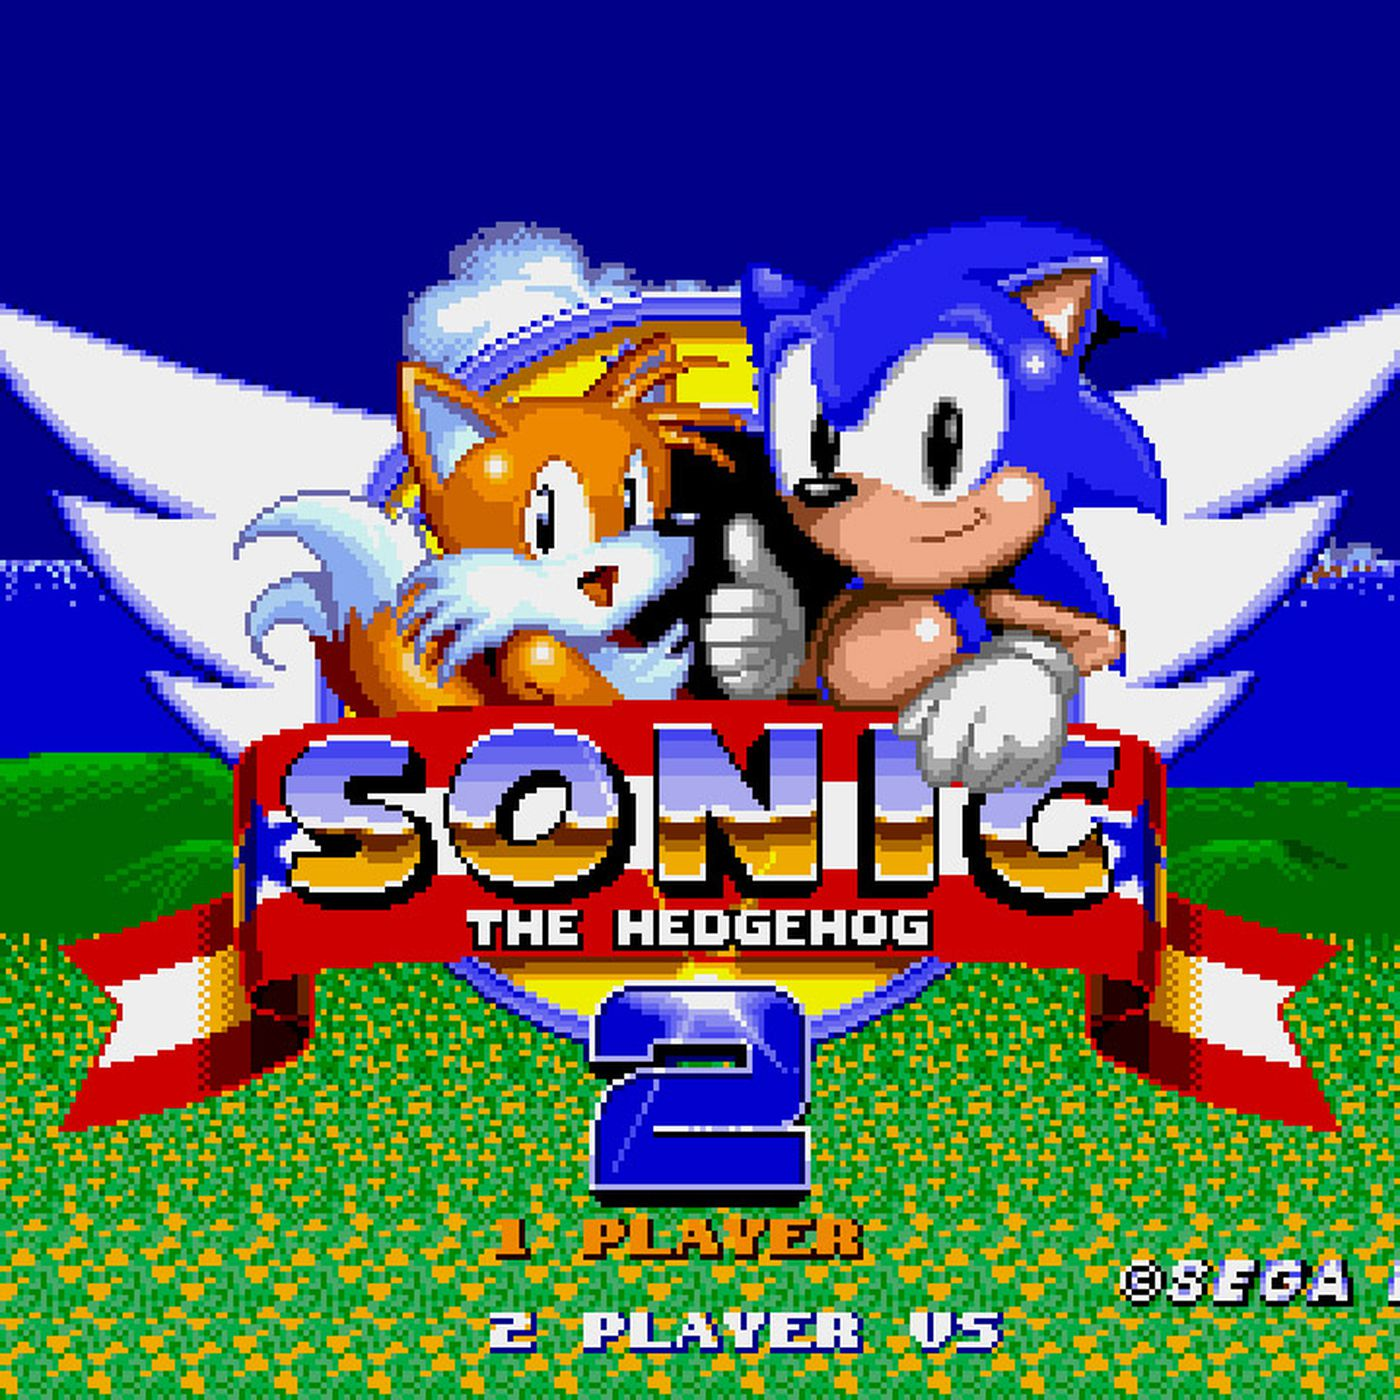 Sonic The Hedgehog 2 For Nintendo Switch Adds New Features To The Game Polygon